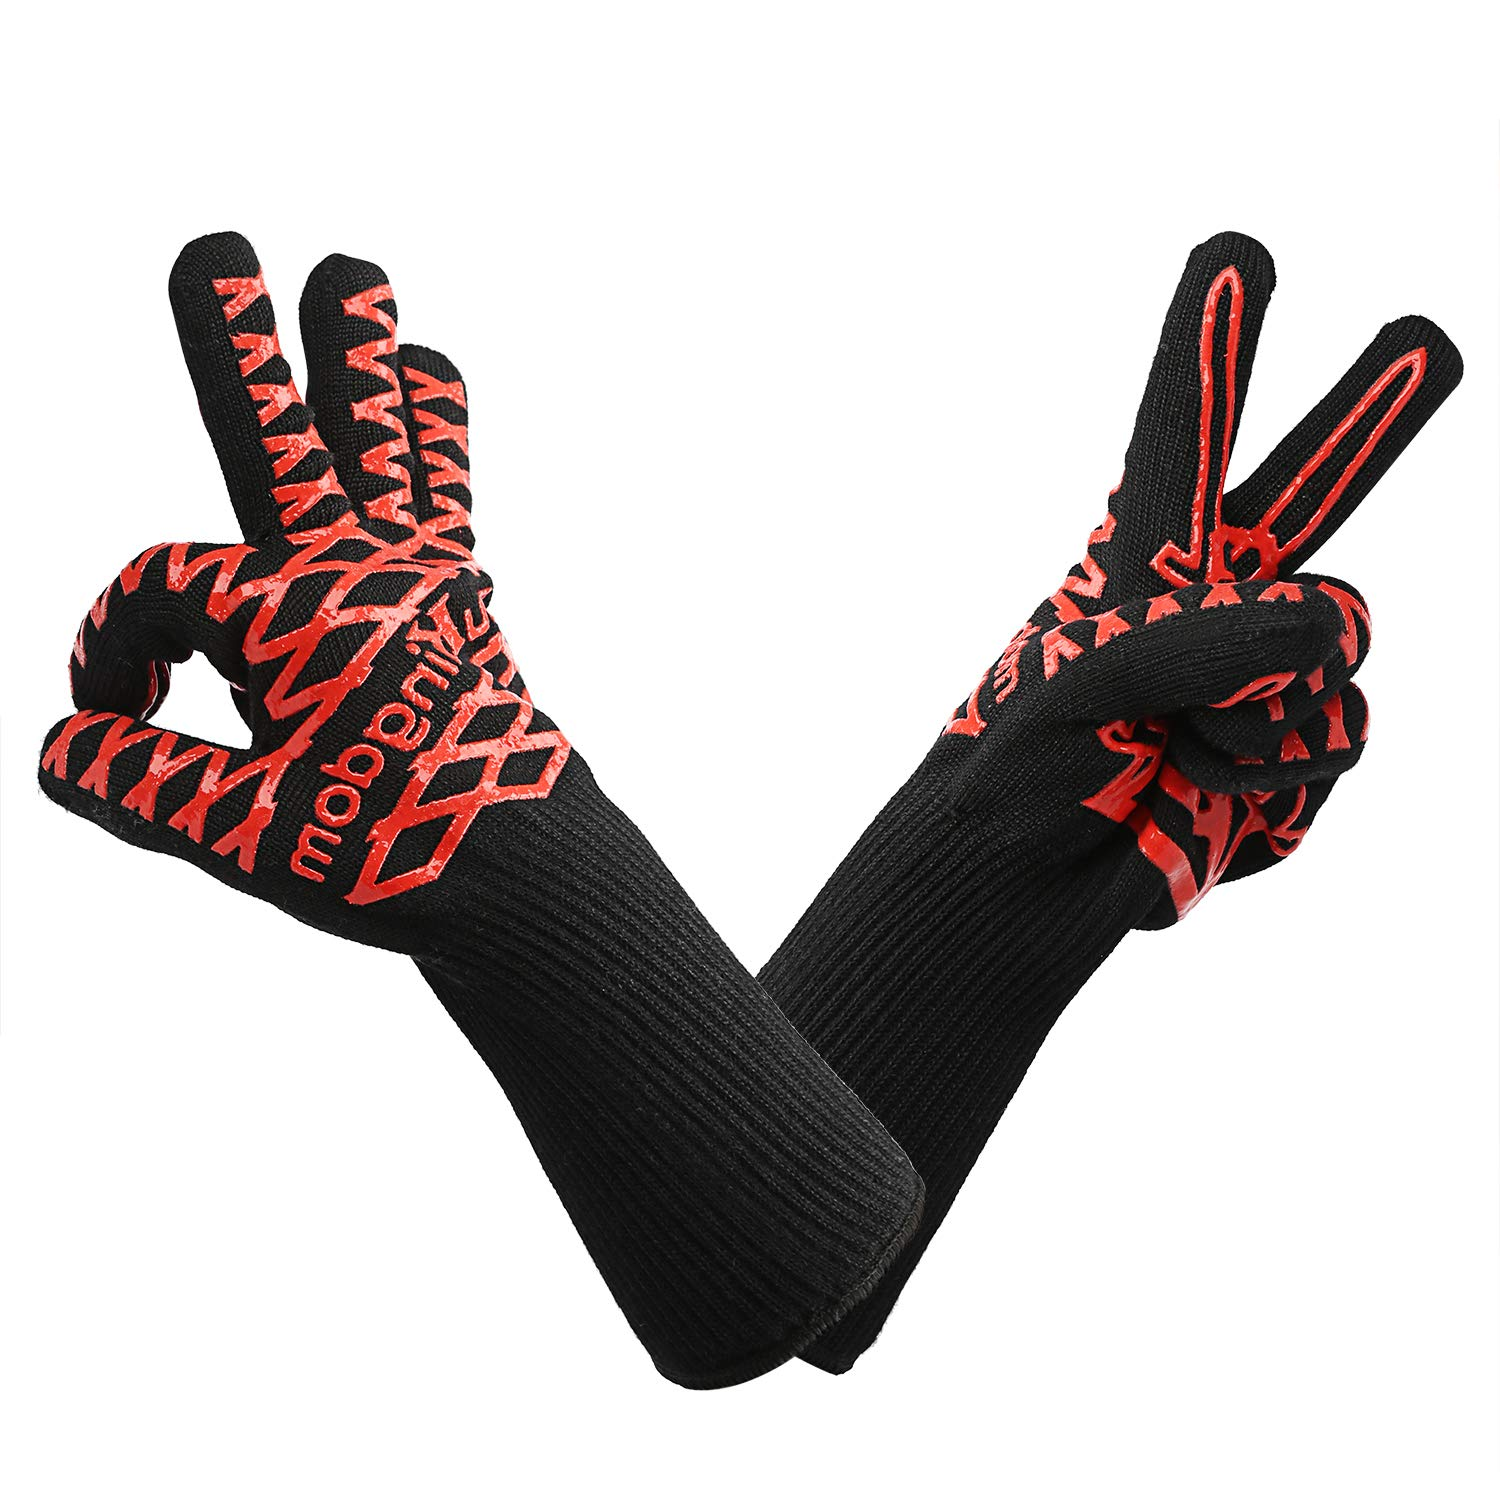 LauKingdom BBQ Gloves, Best Versatile Heat Resistant Gloves for Cooking, Non-Slip for Barbecue, Baking, Welding, Cutting/Wrist Protection/Lifetime Replacement/14 Inch